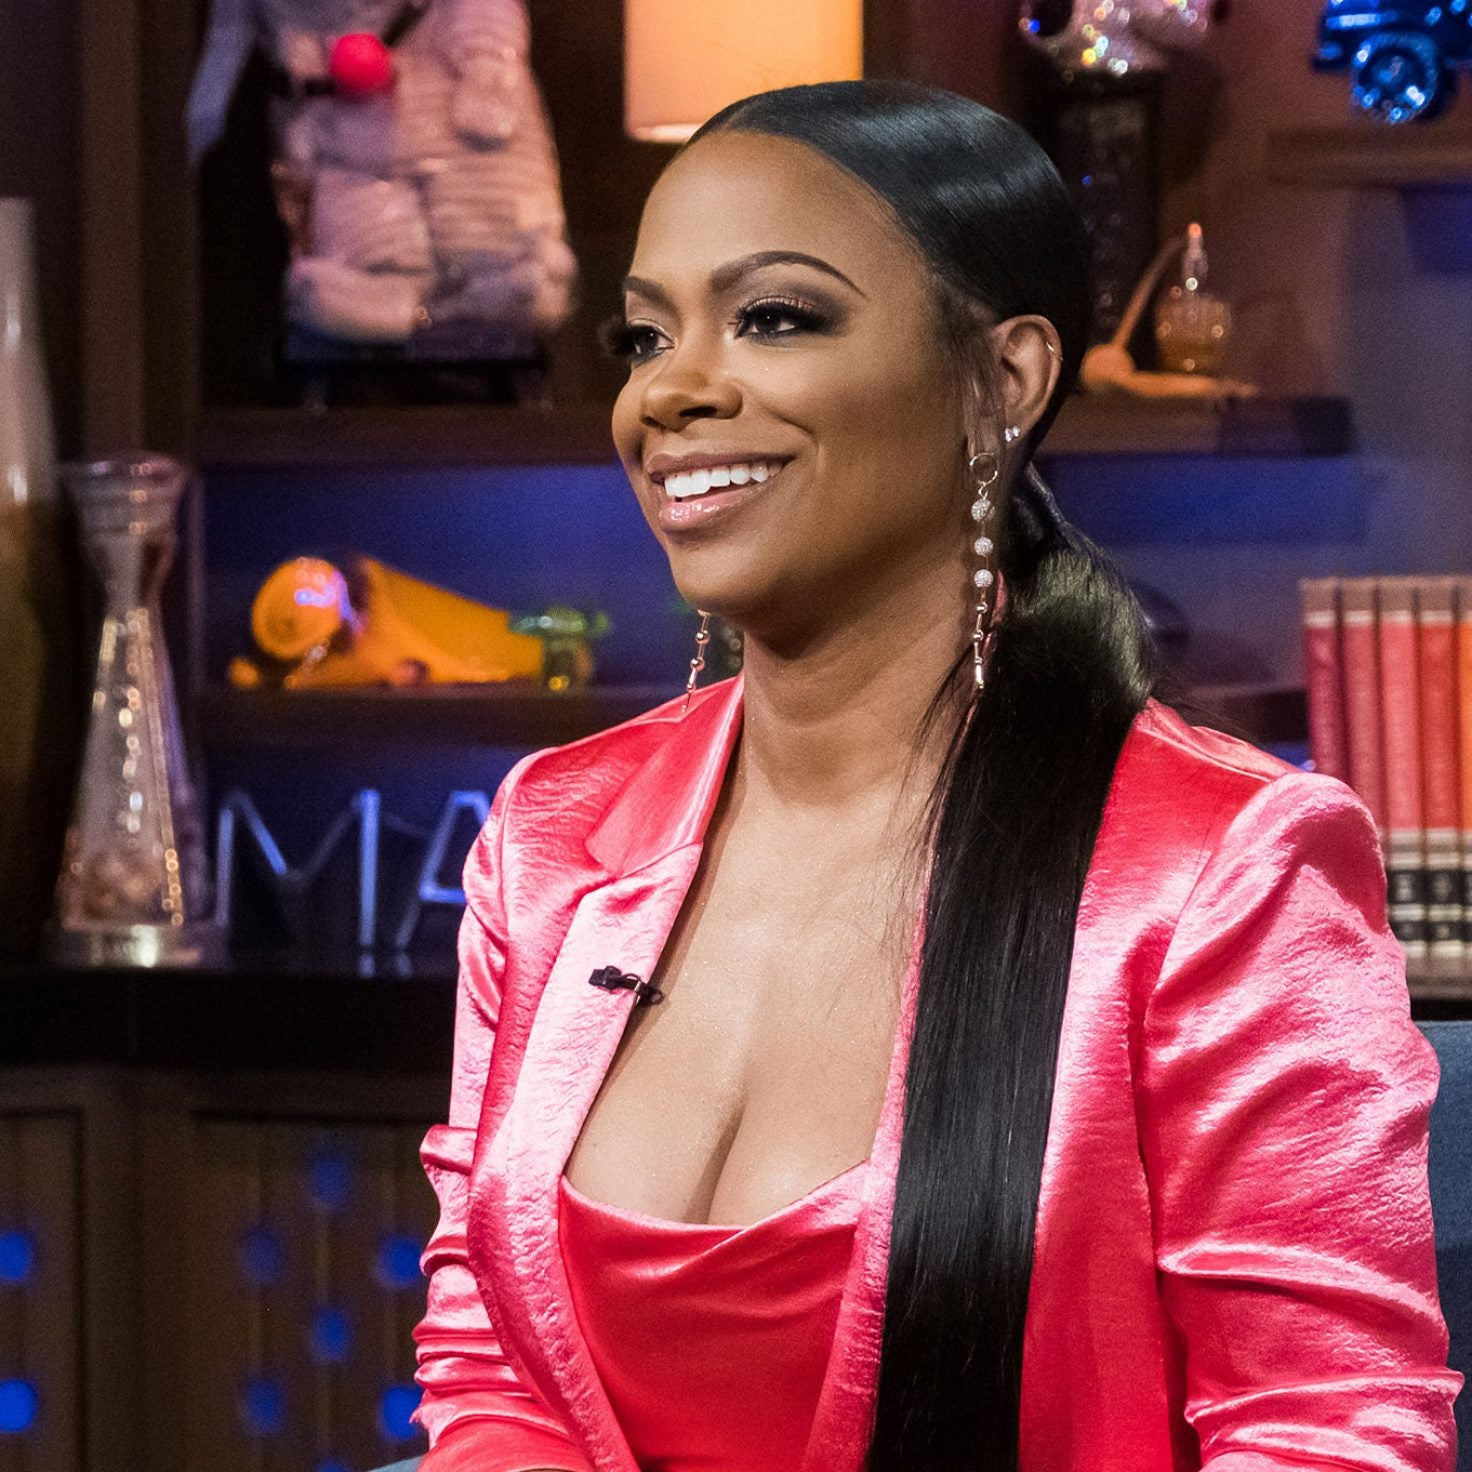 kandi-burruss-shares-a-teaser-video-for-this-sundays-episode-of-the-chi